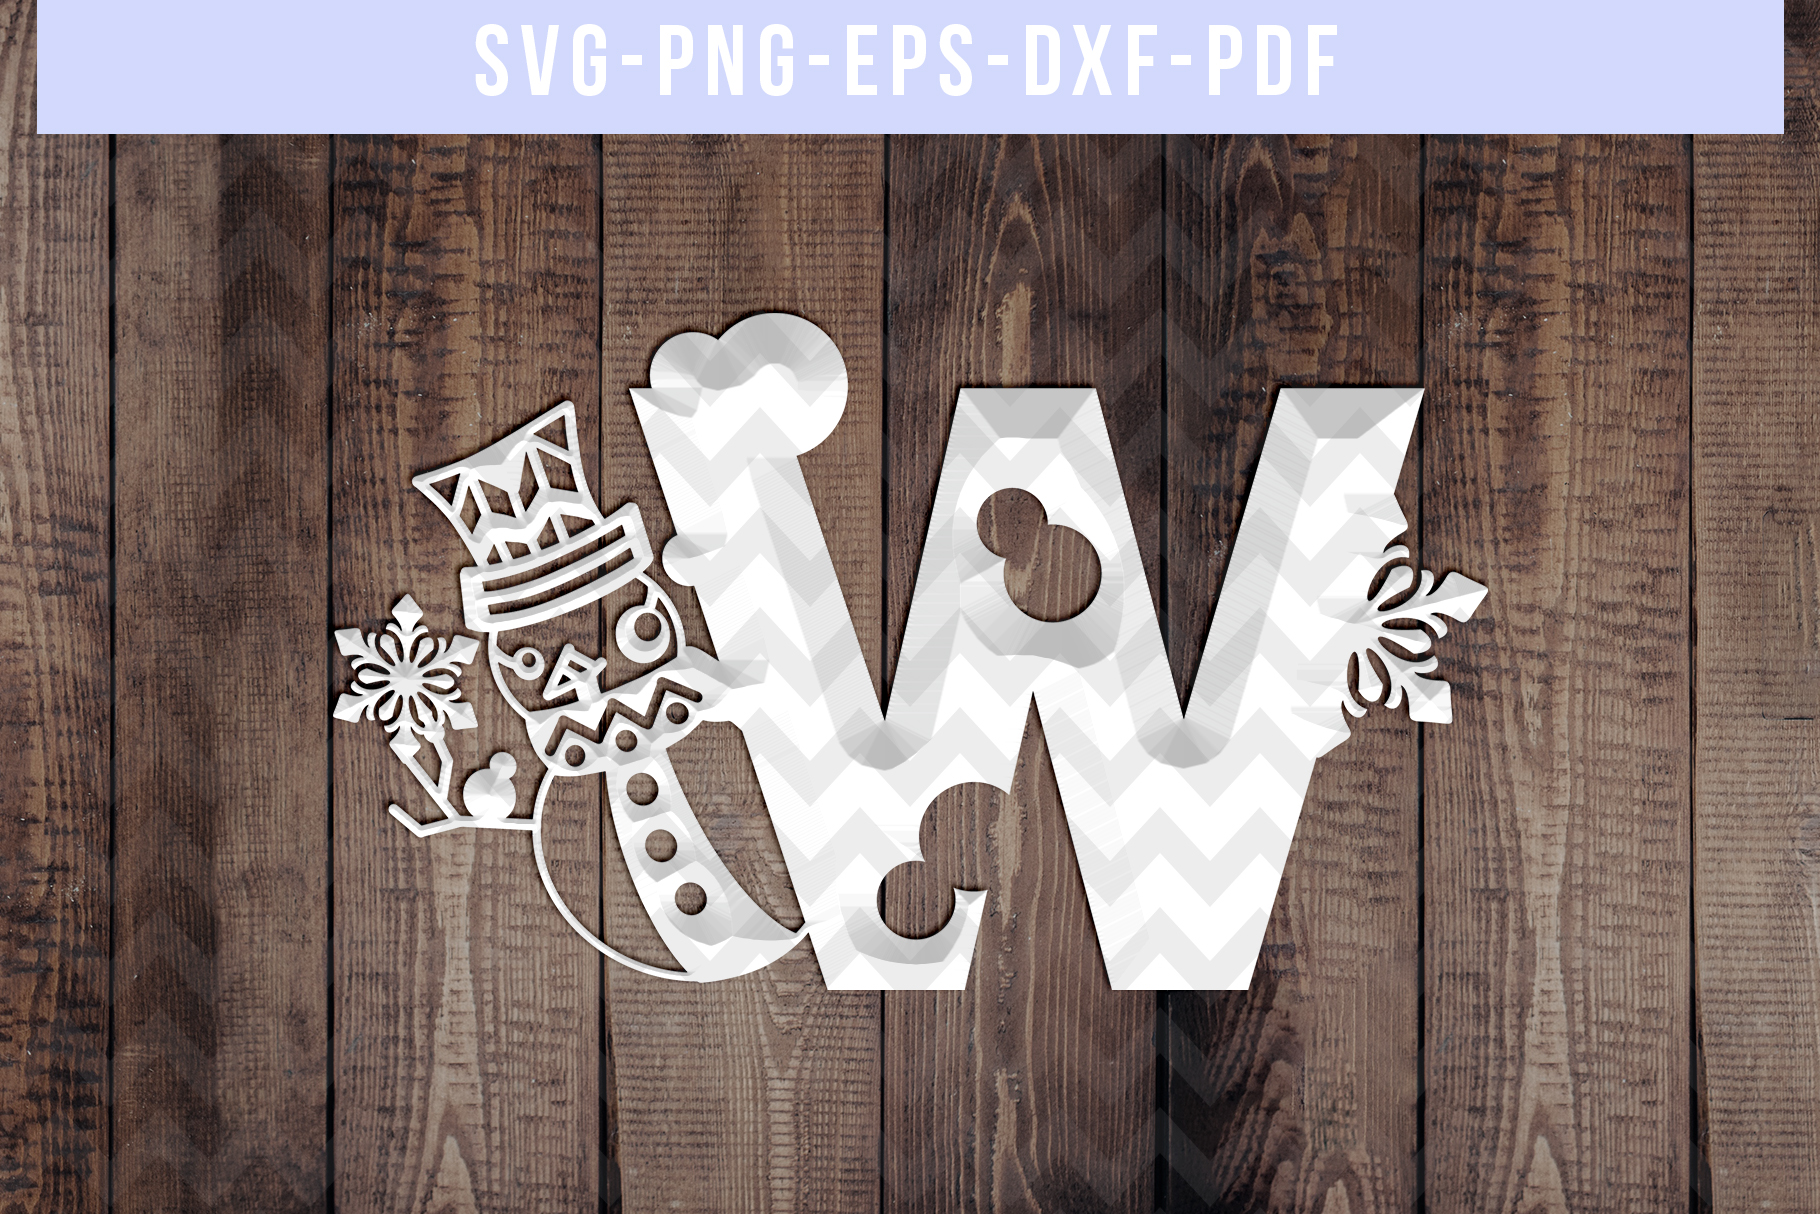 Snowman Font W Paper Cut Template, Winter Cutting SVG, DXF example image 2